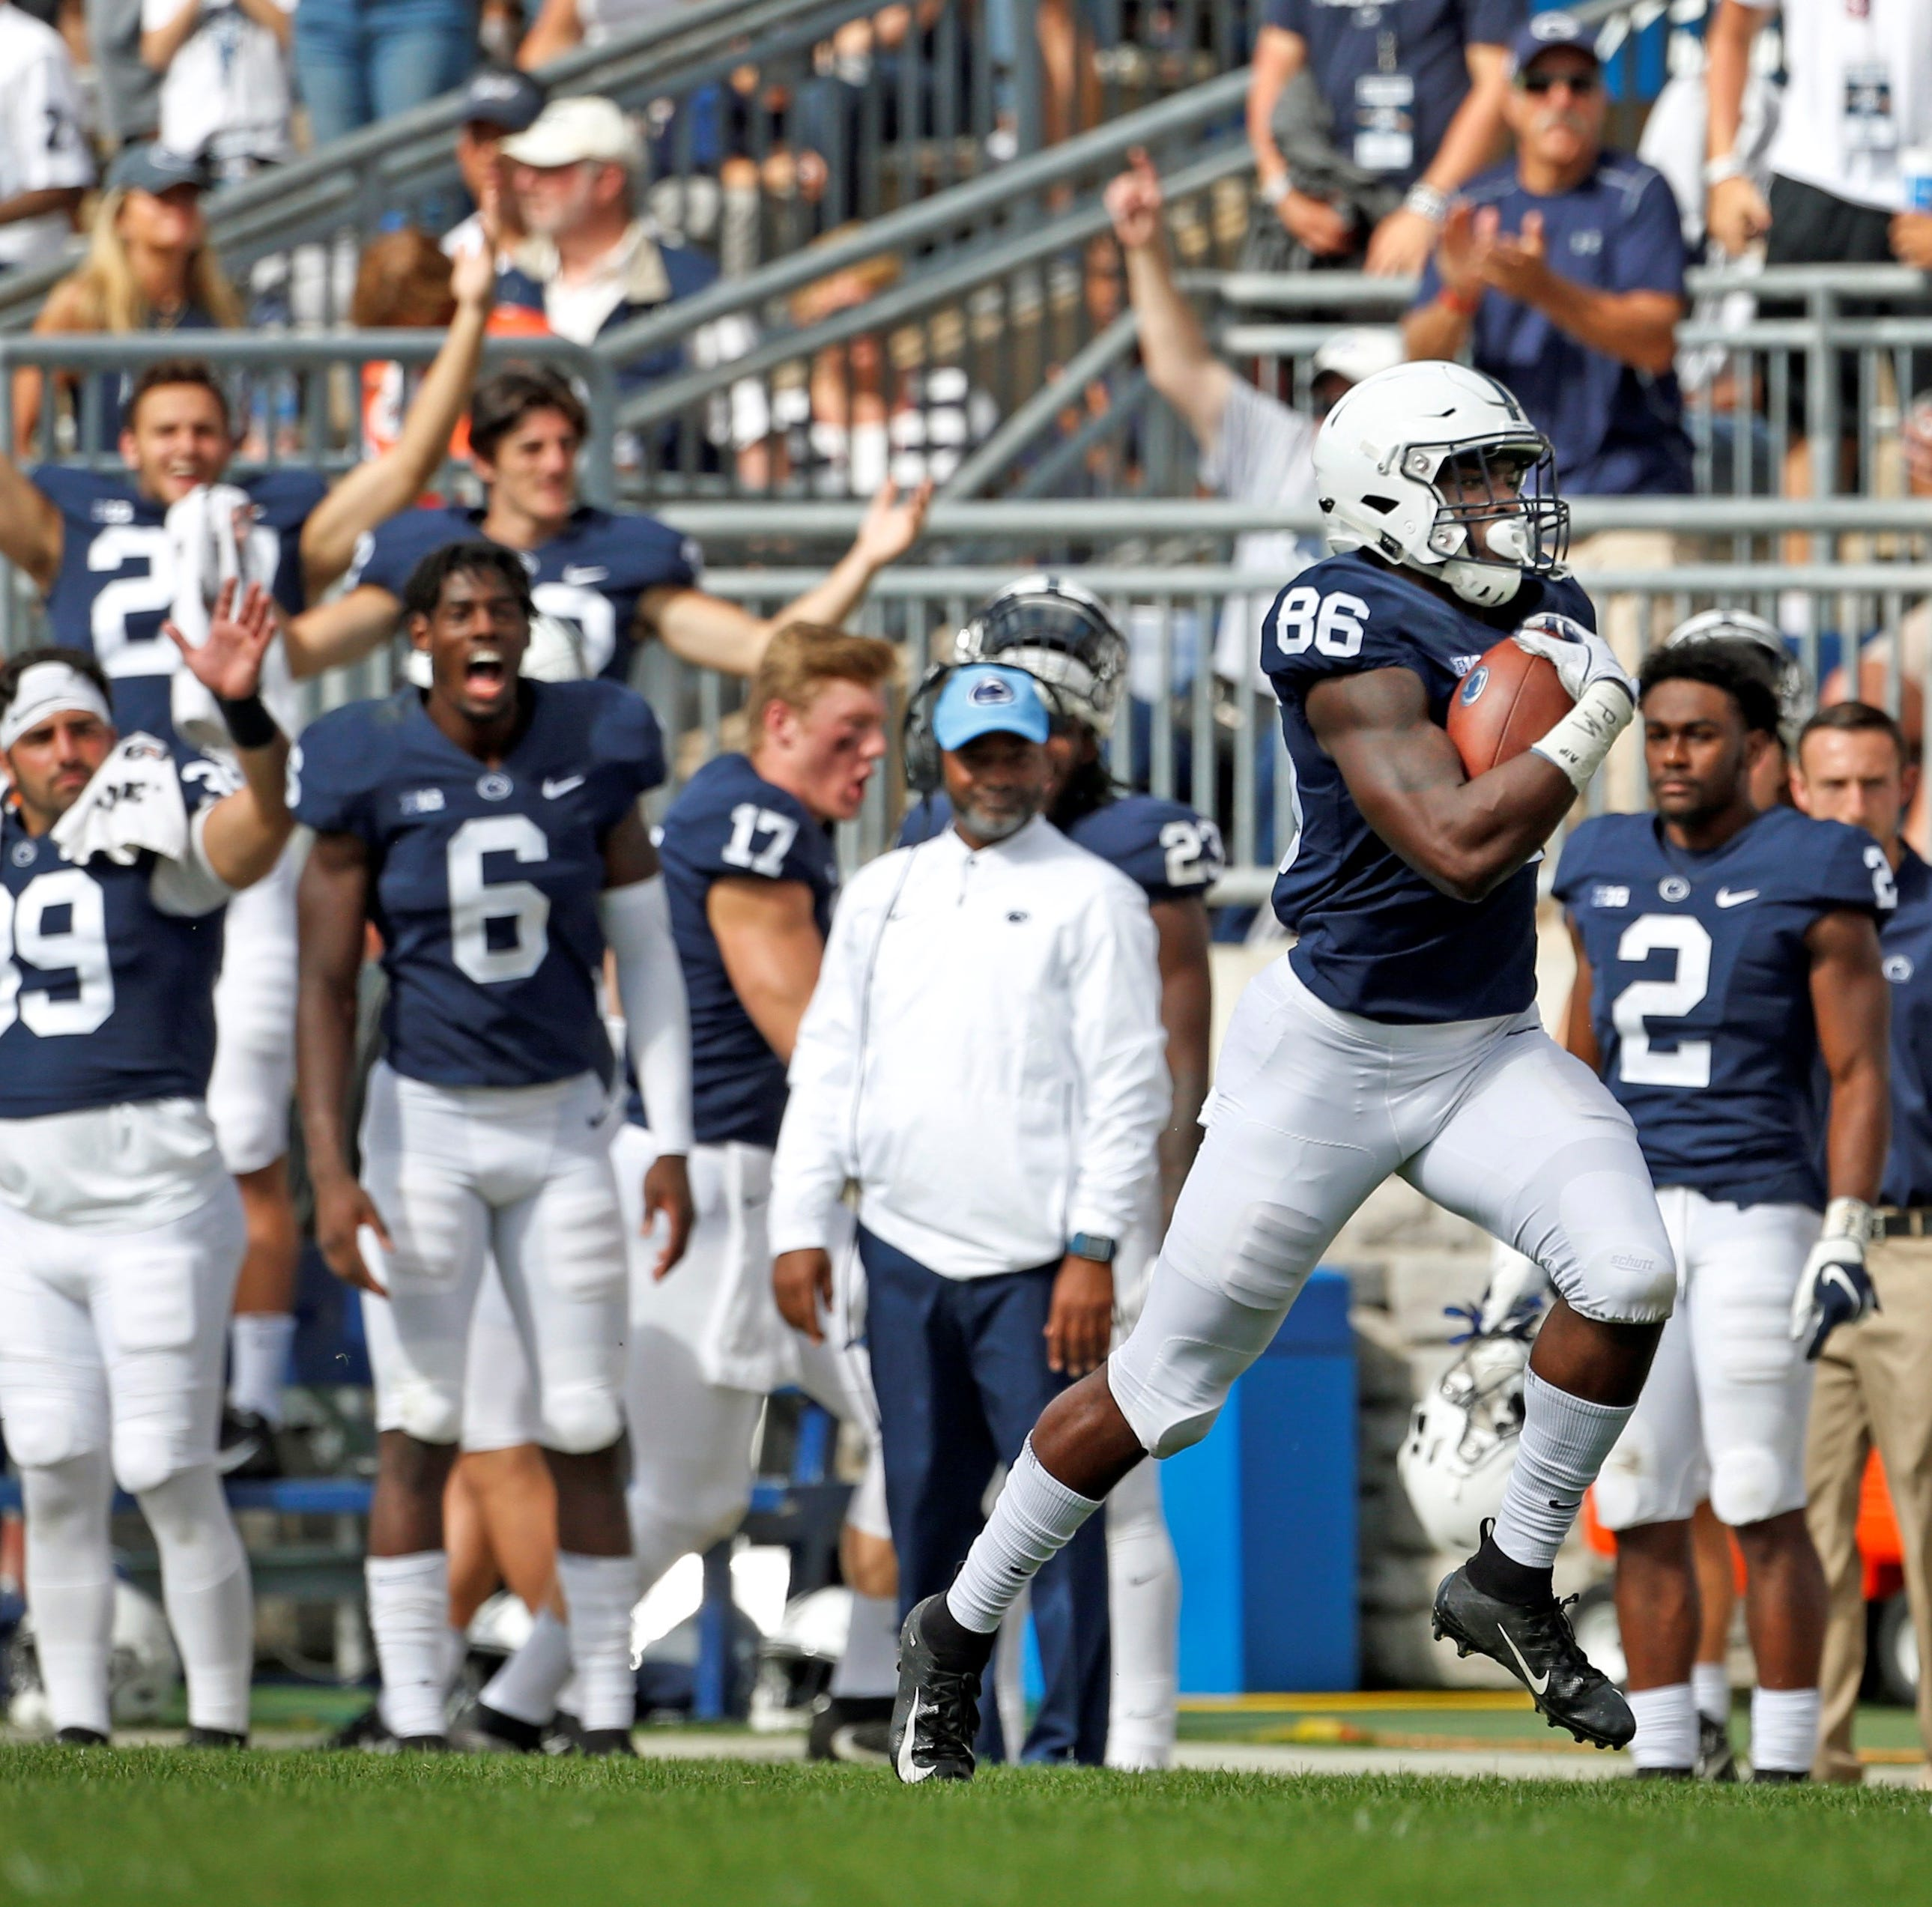 Penn State's redshirt strategy develops in Saturday's blowout victory over Kent State